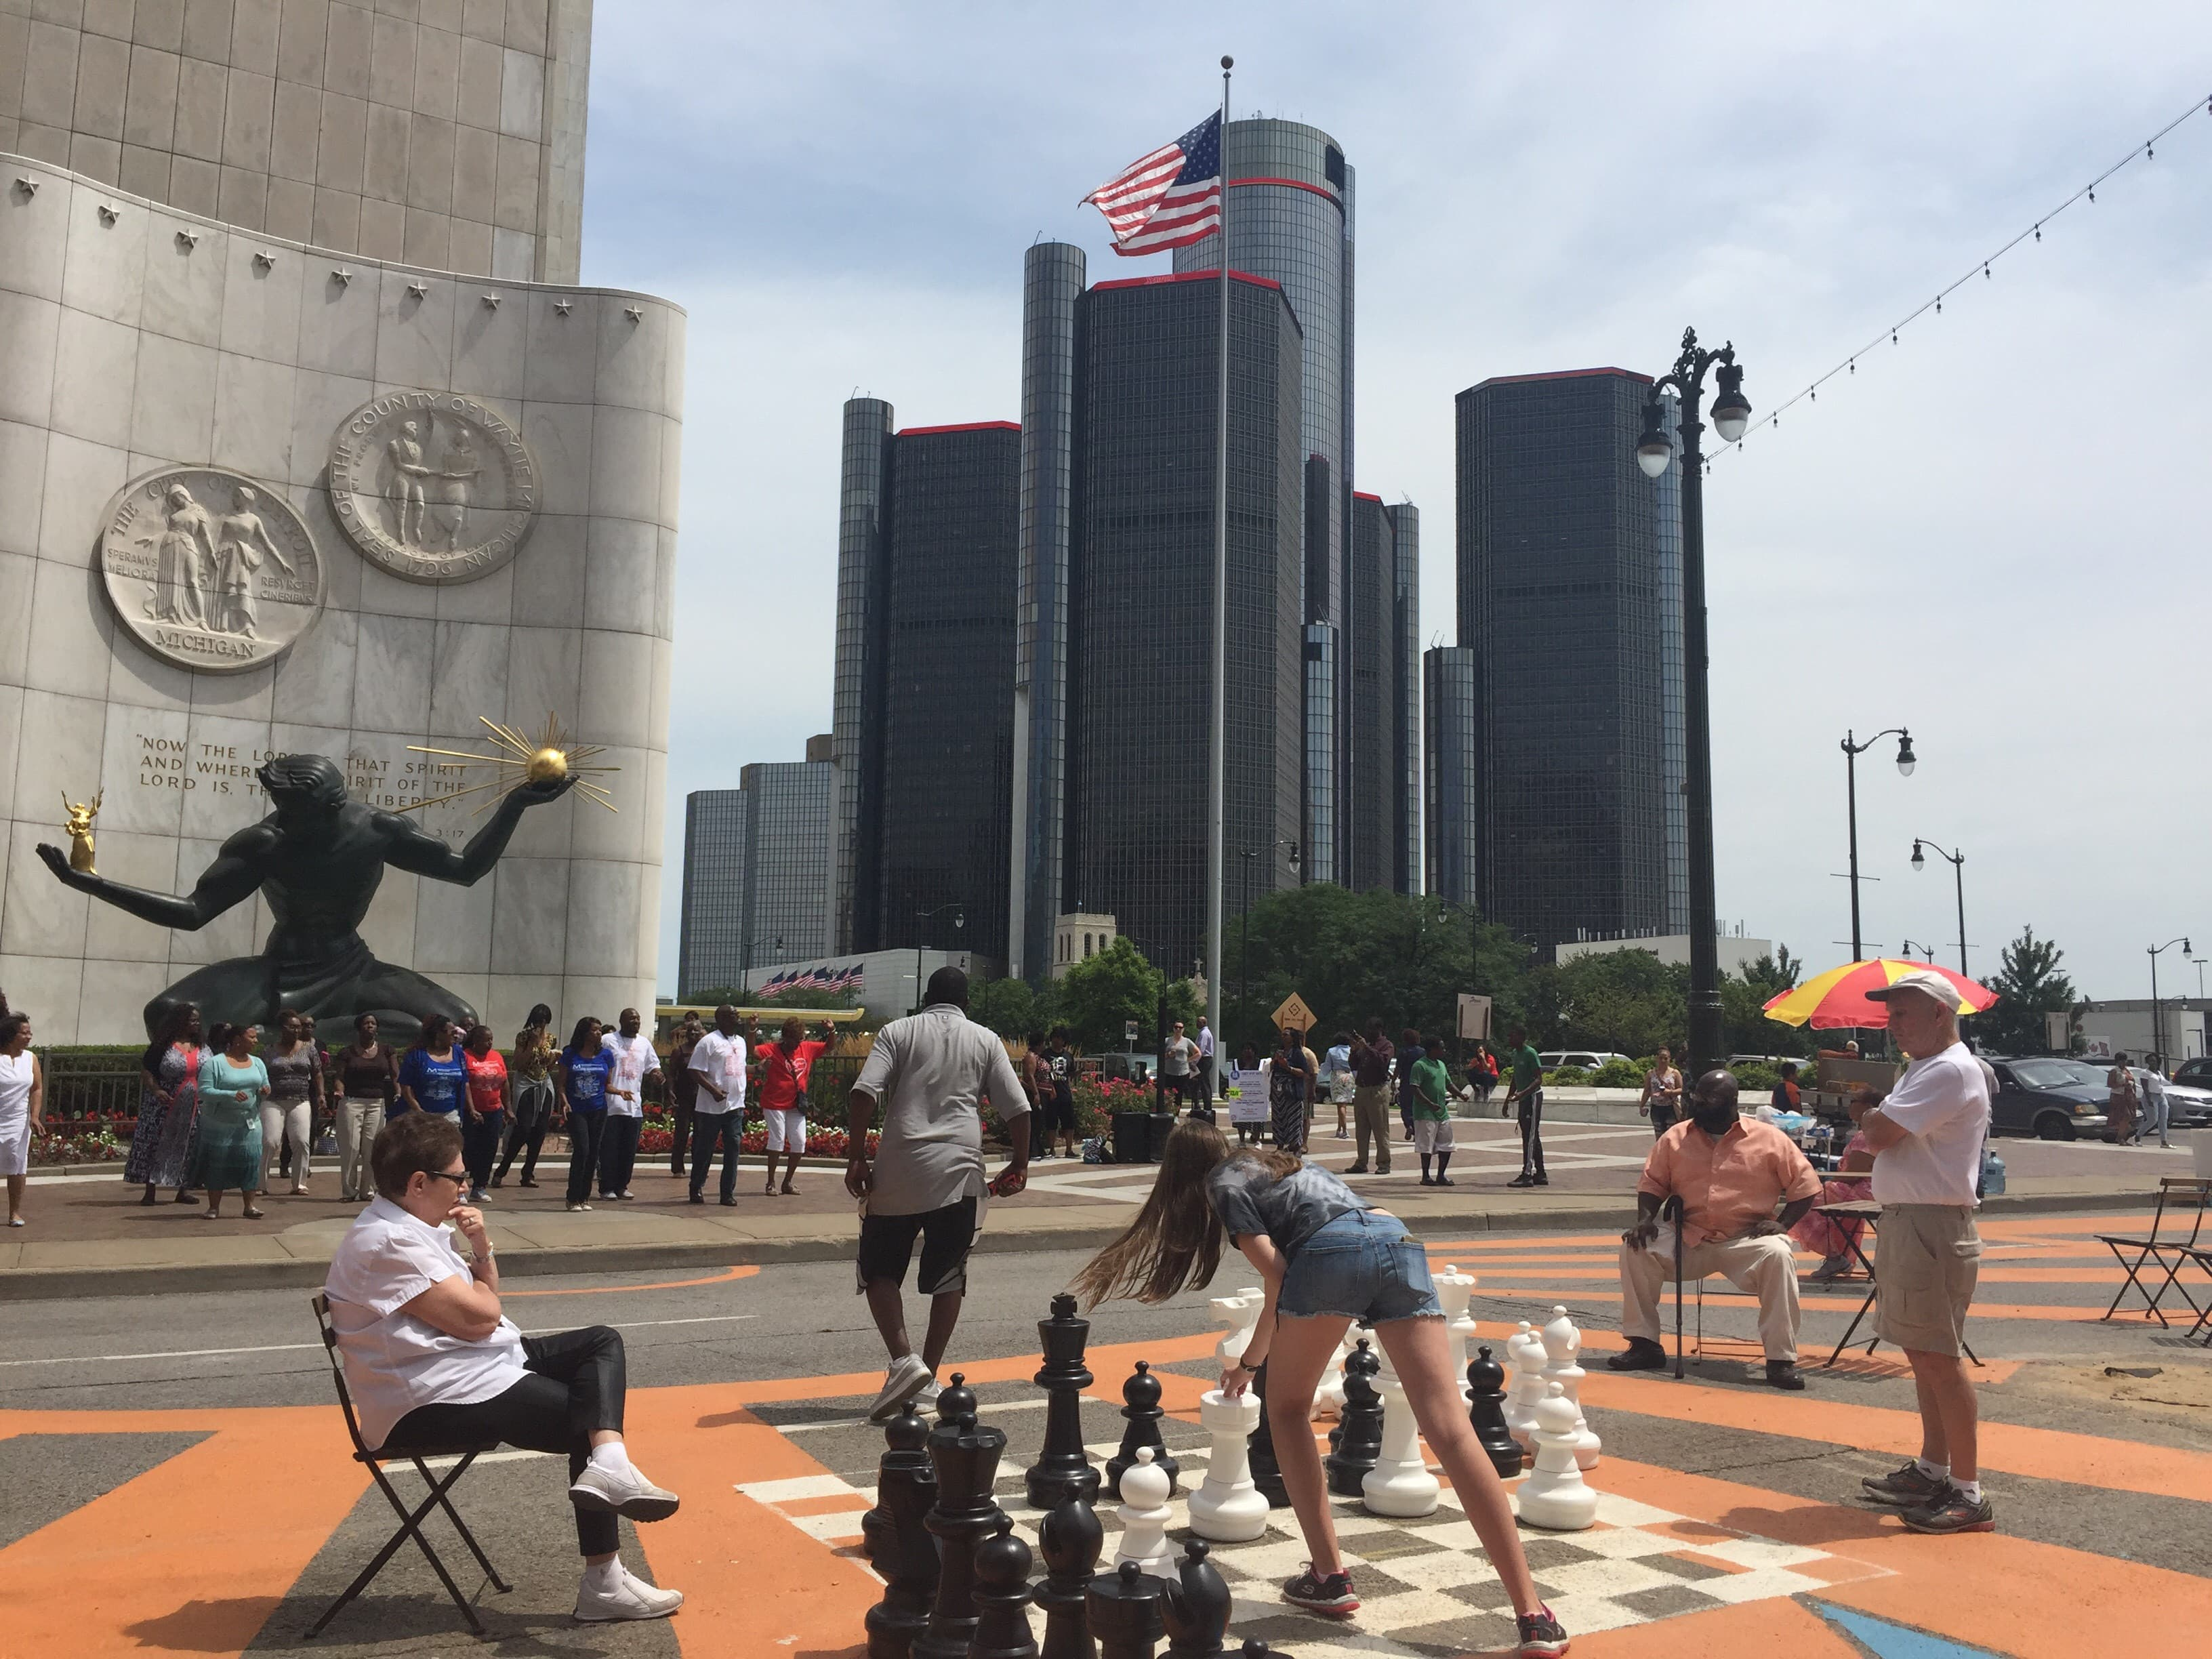 Impact of the Spirit Plaza in Detroit